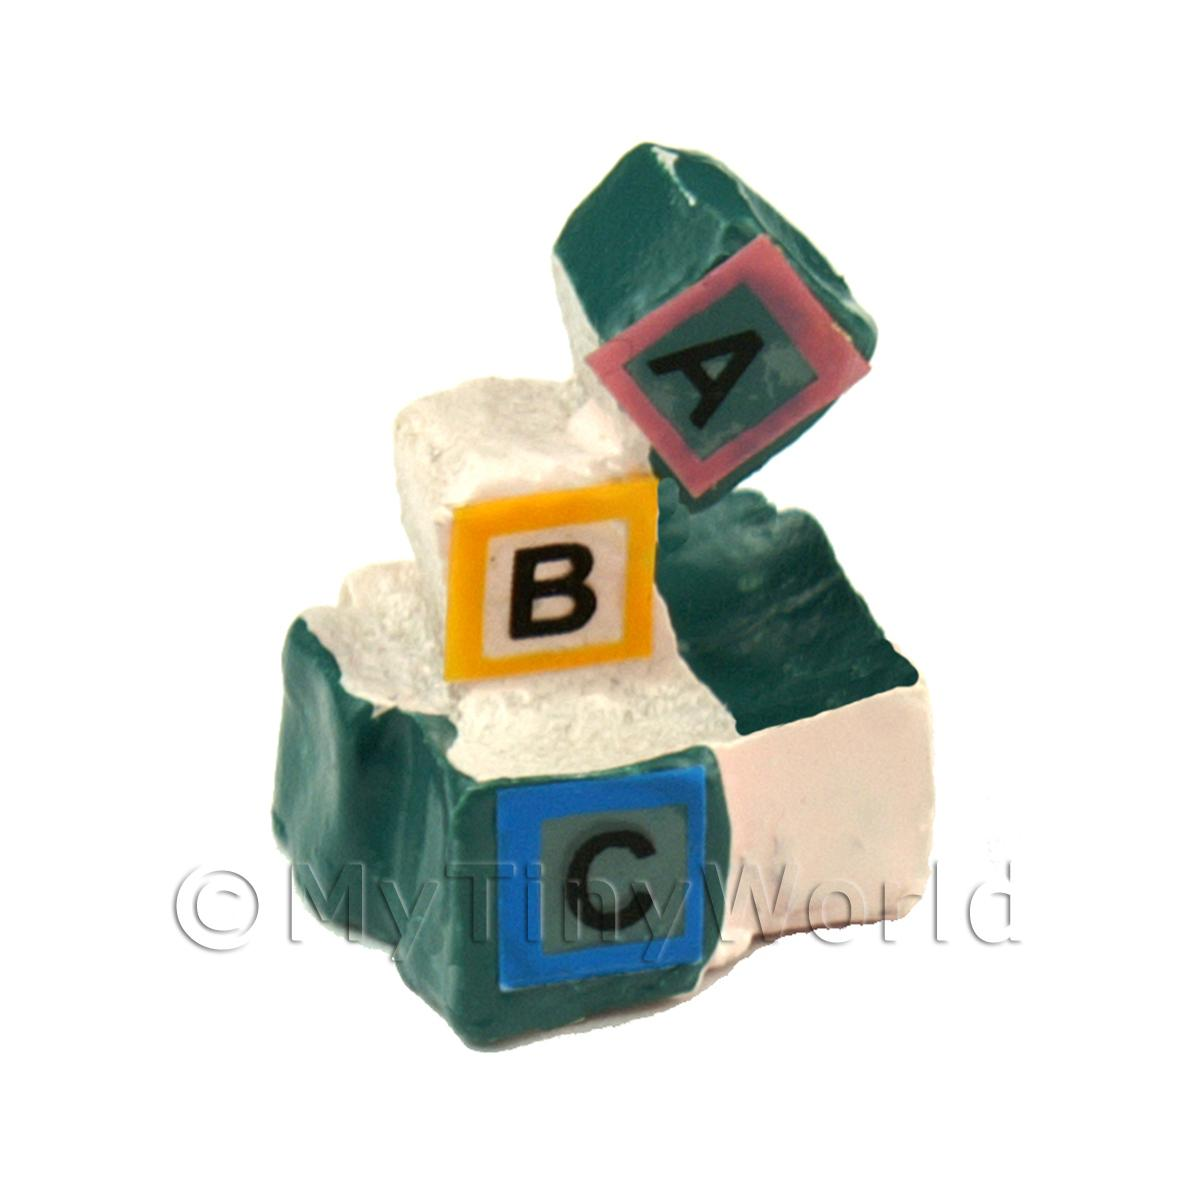 Dolls House Miniature Block of Cast Childrens Blocks